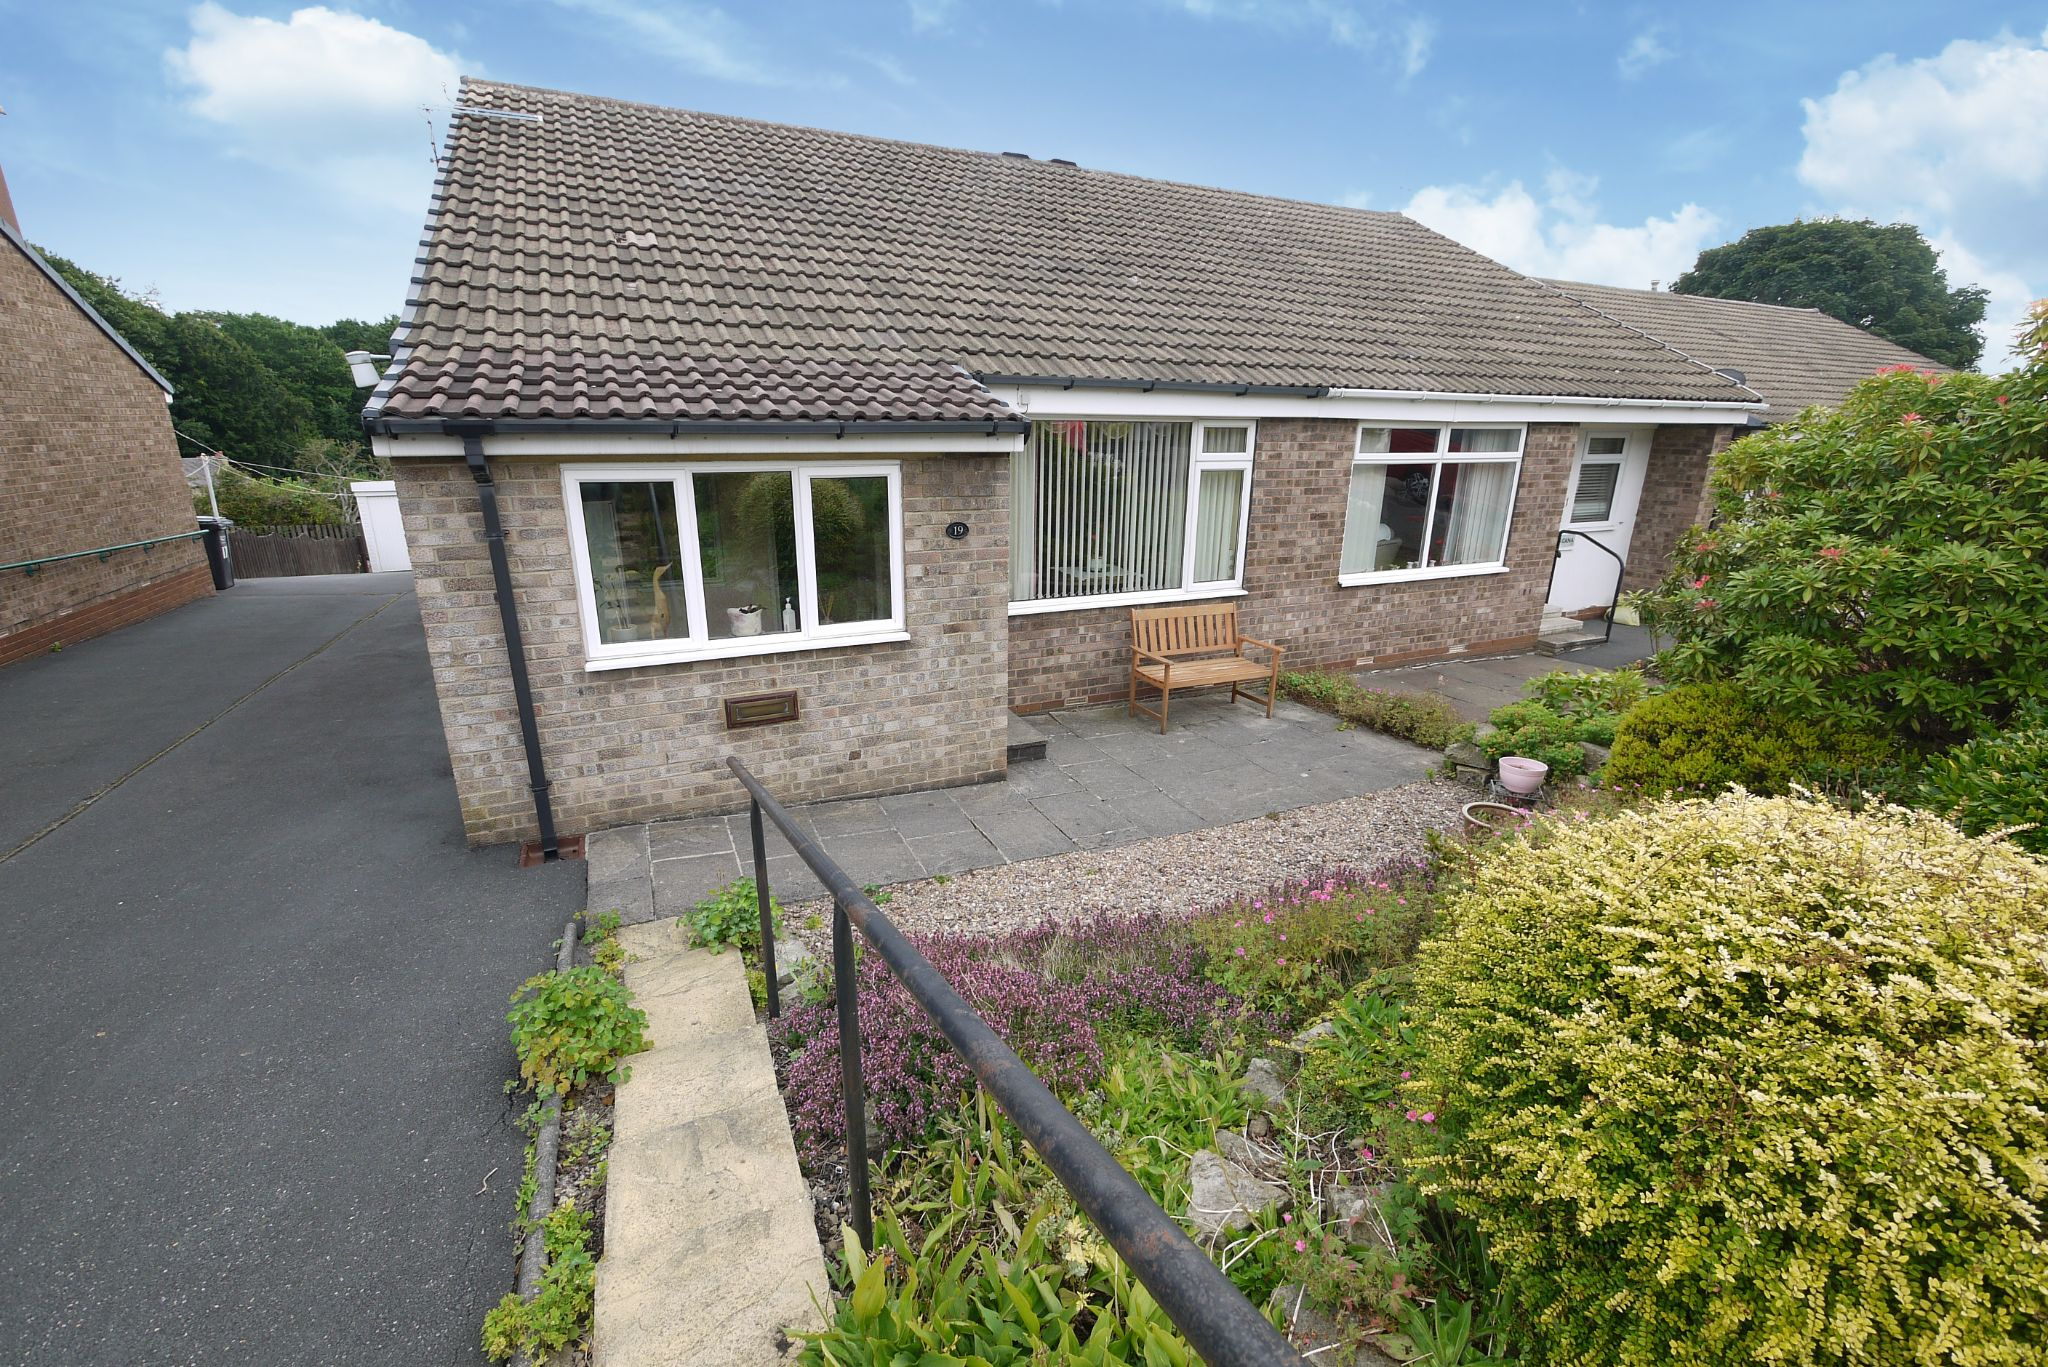 2 bedroom semi-detached bungalow SSTC in Brighouse - Photograph 1.